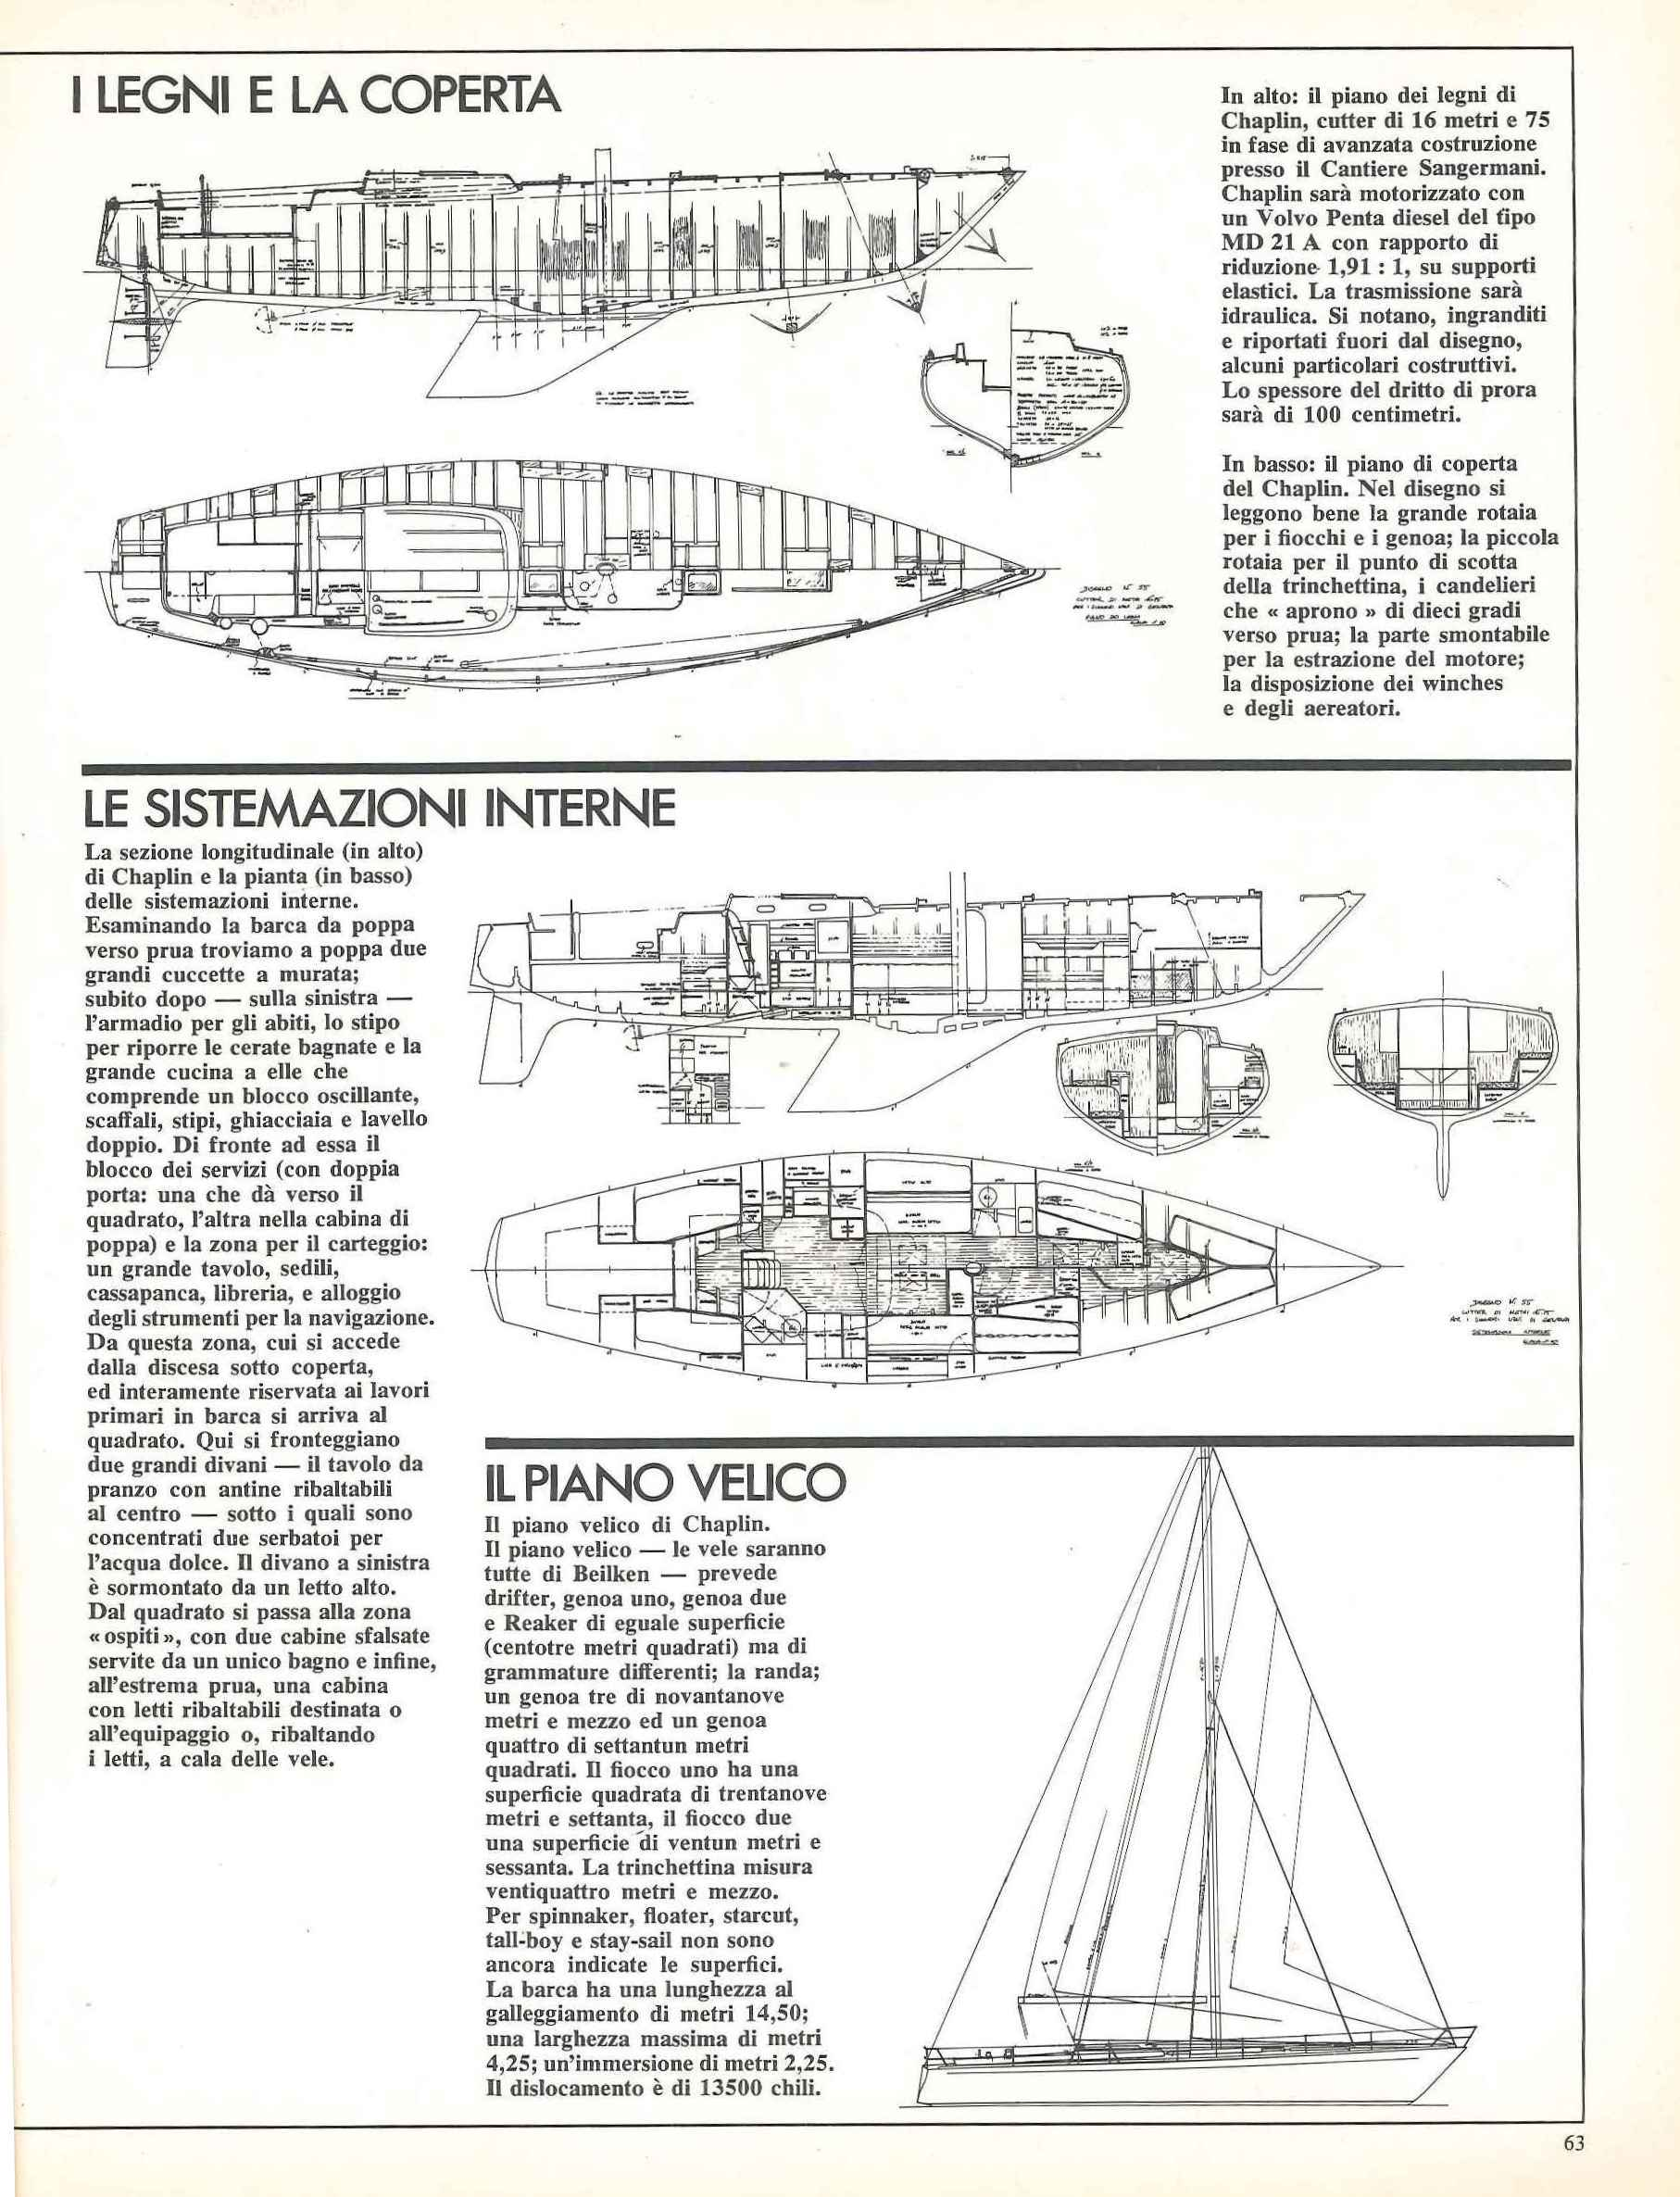 1974 03 PRESS SCIARRELLI SANGERMANI Uomo Mare (2).jpg